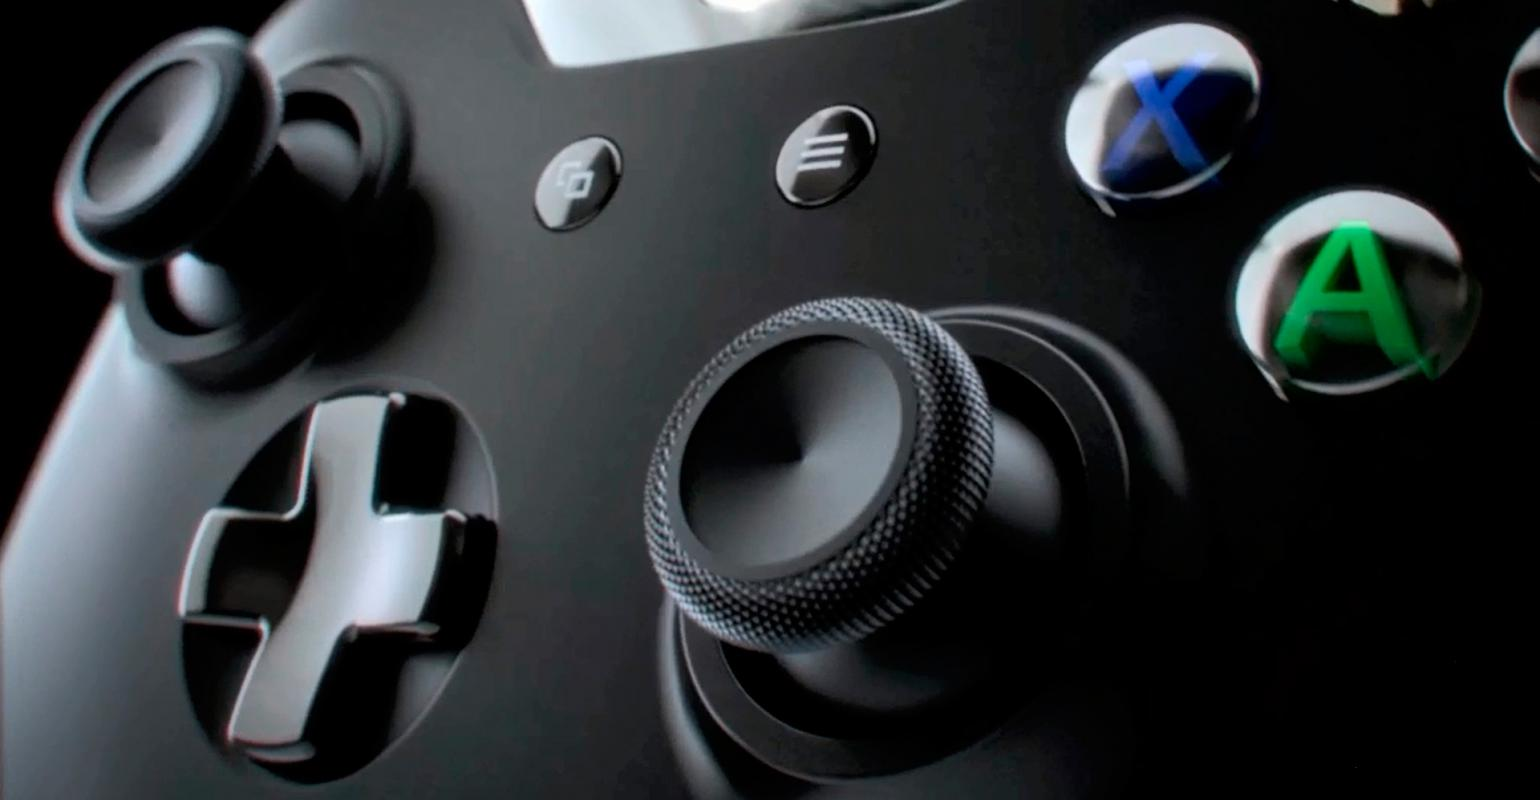 Your Xbox One may soon offer to surprise you